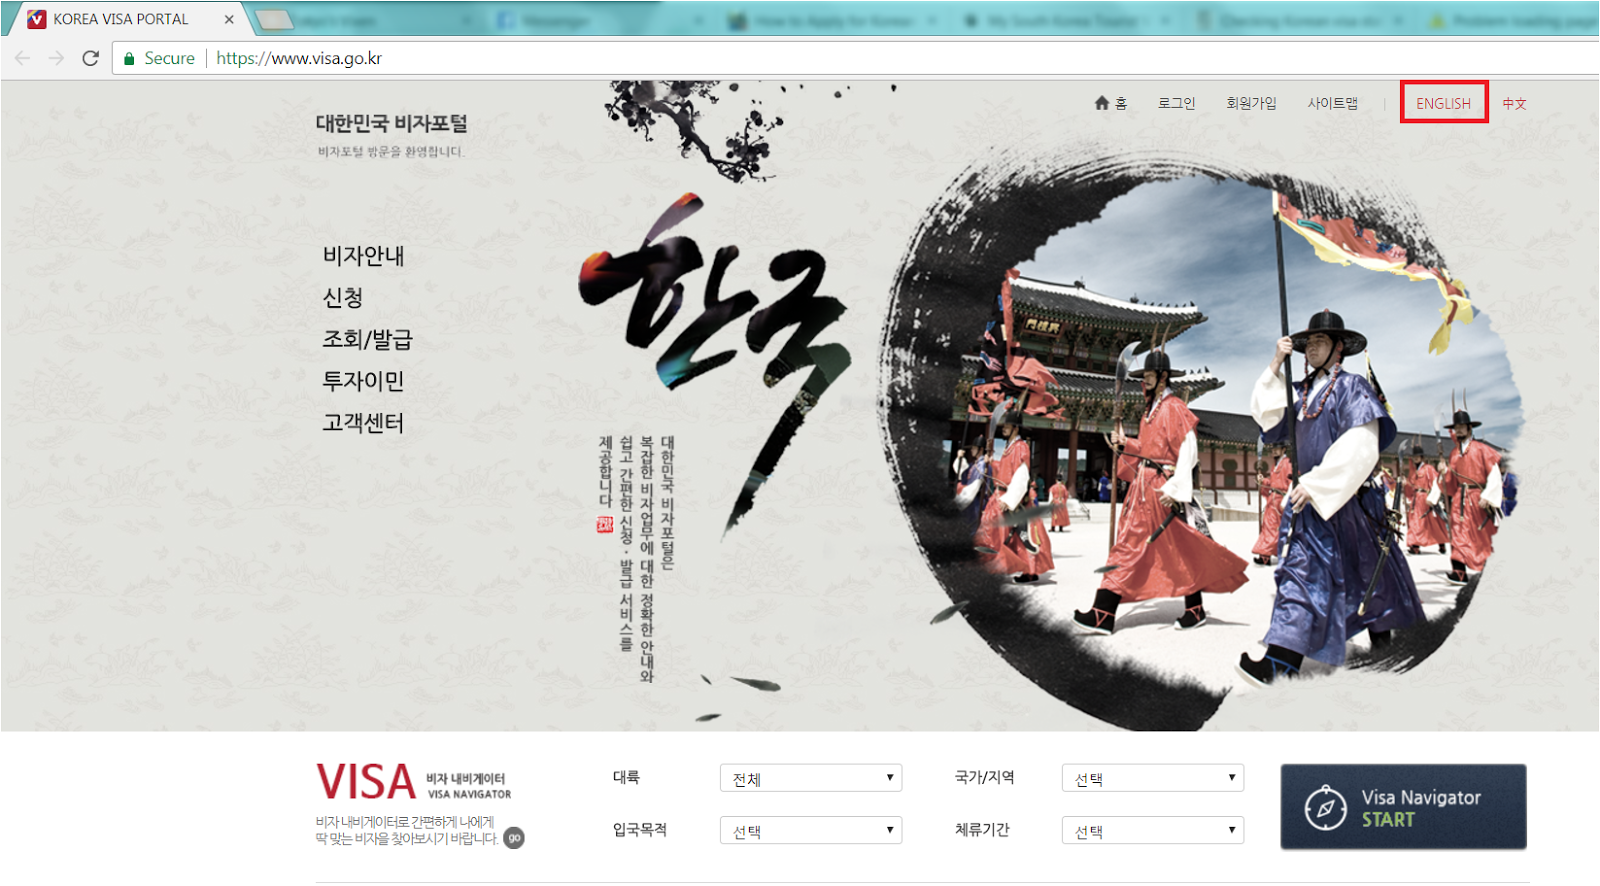 How to Check the Status of your Korean Visa Application